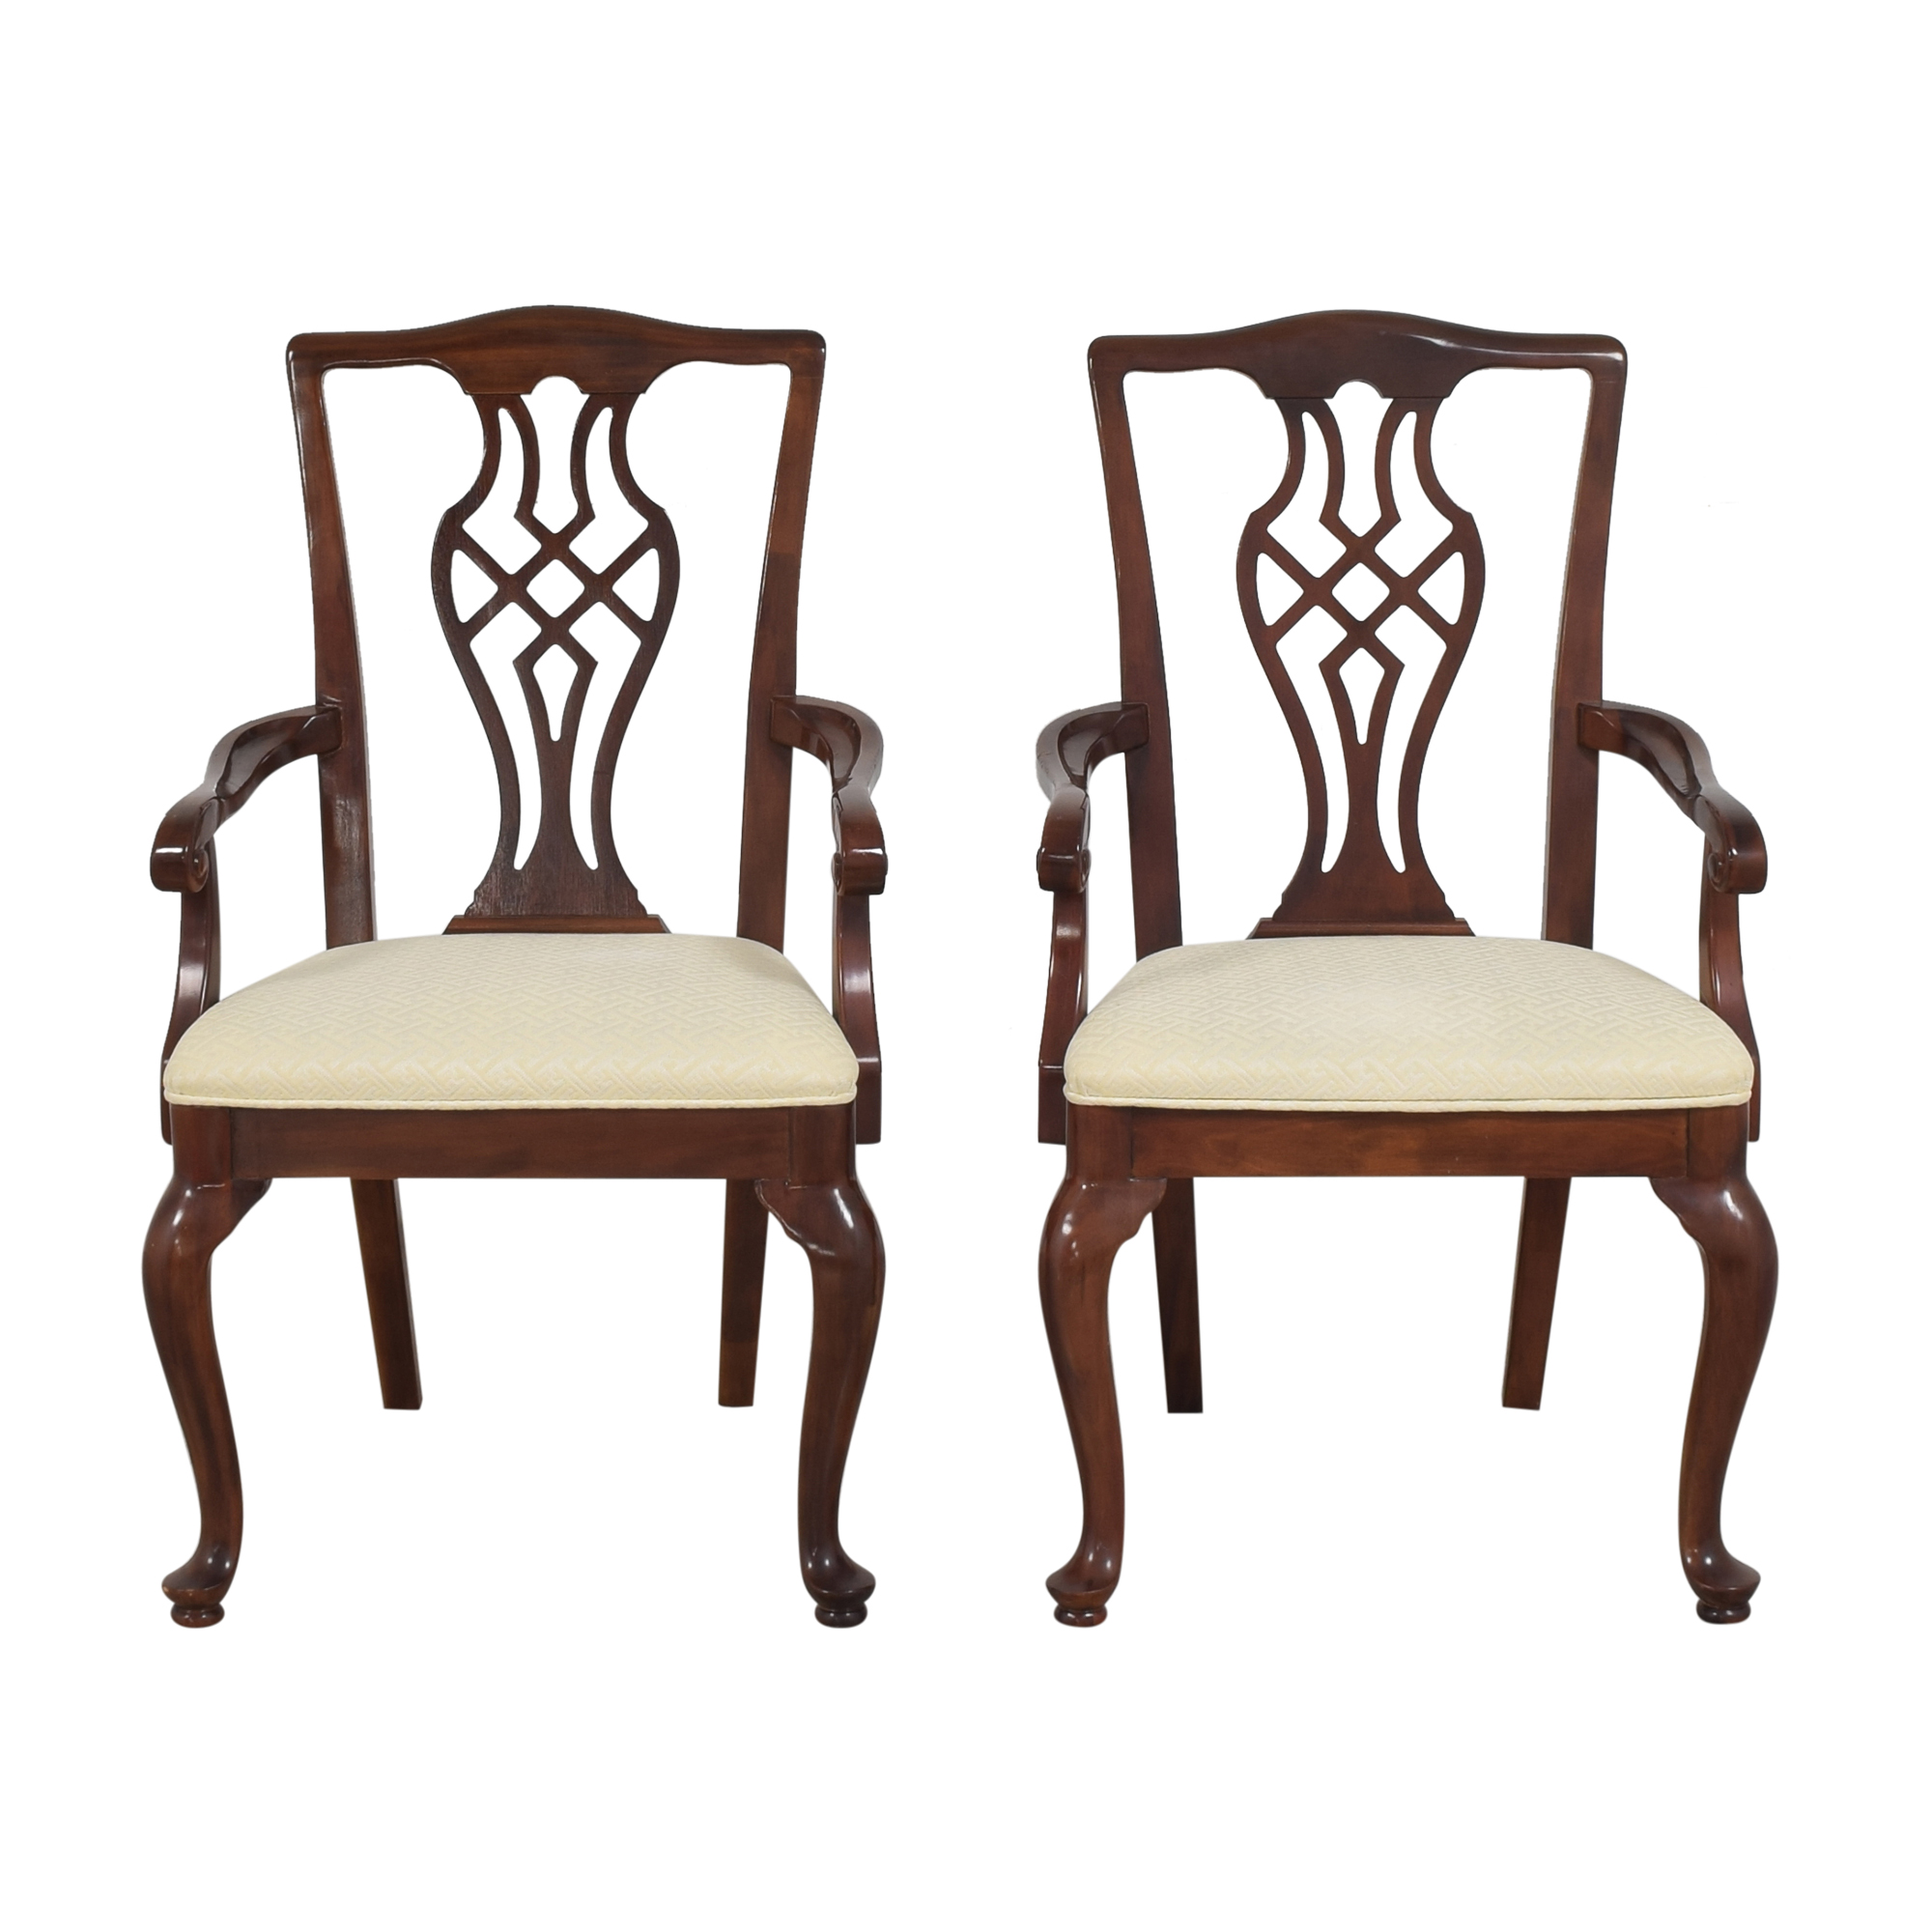 Drexel Heritage Drexel Heritage Chippendale Dining Arm Chairs ct